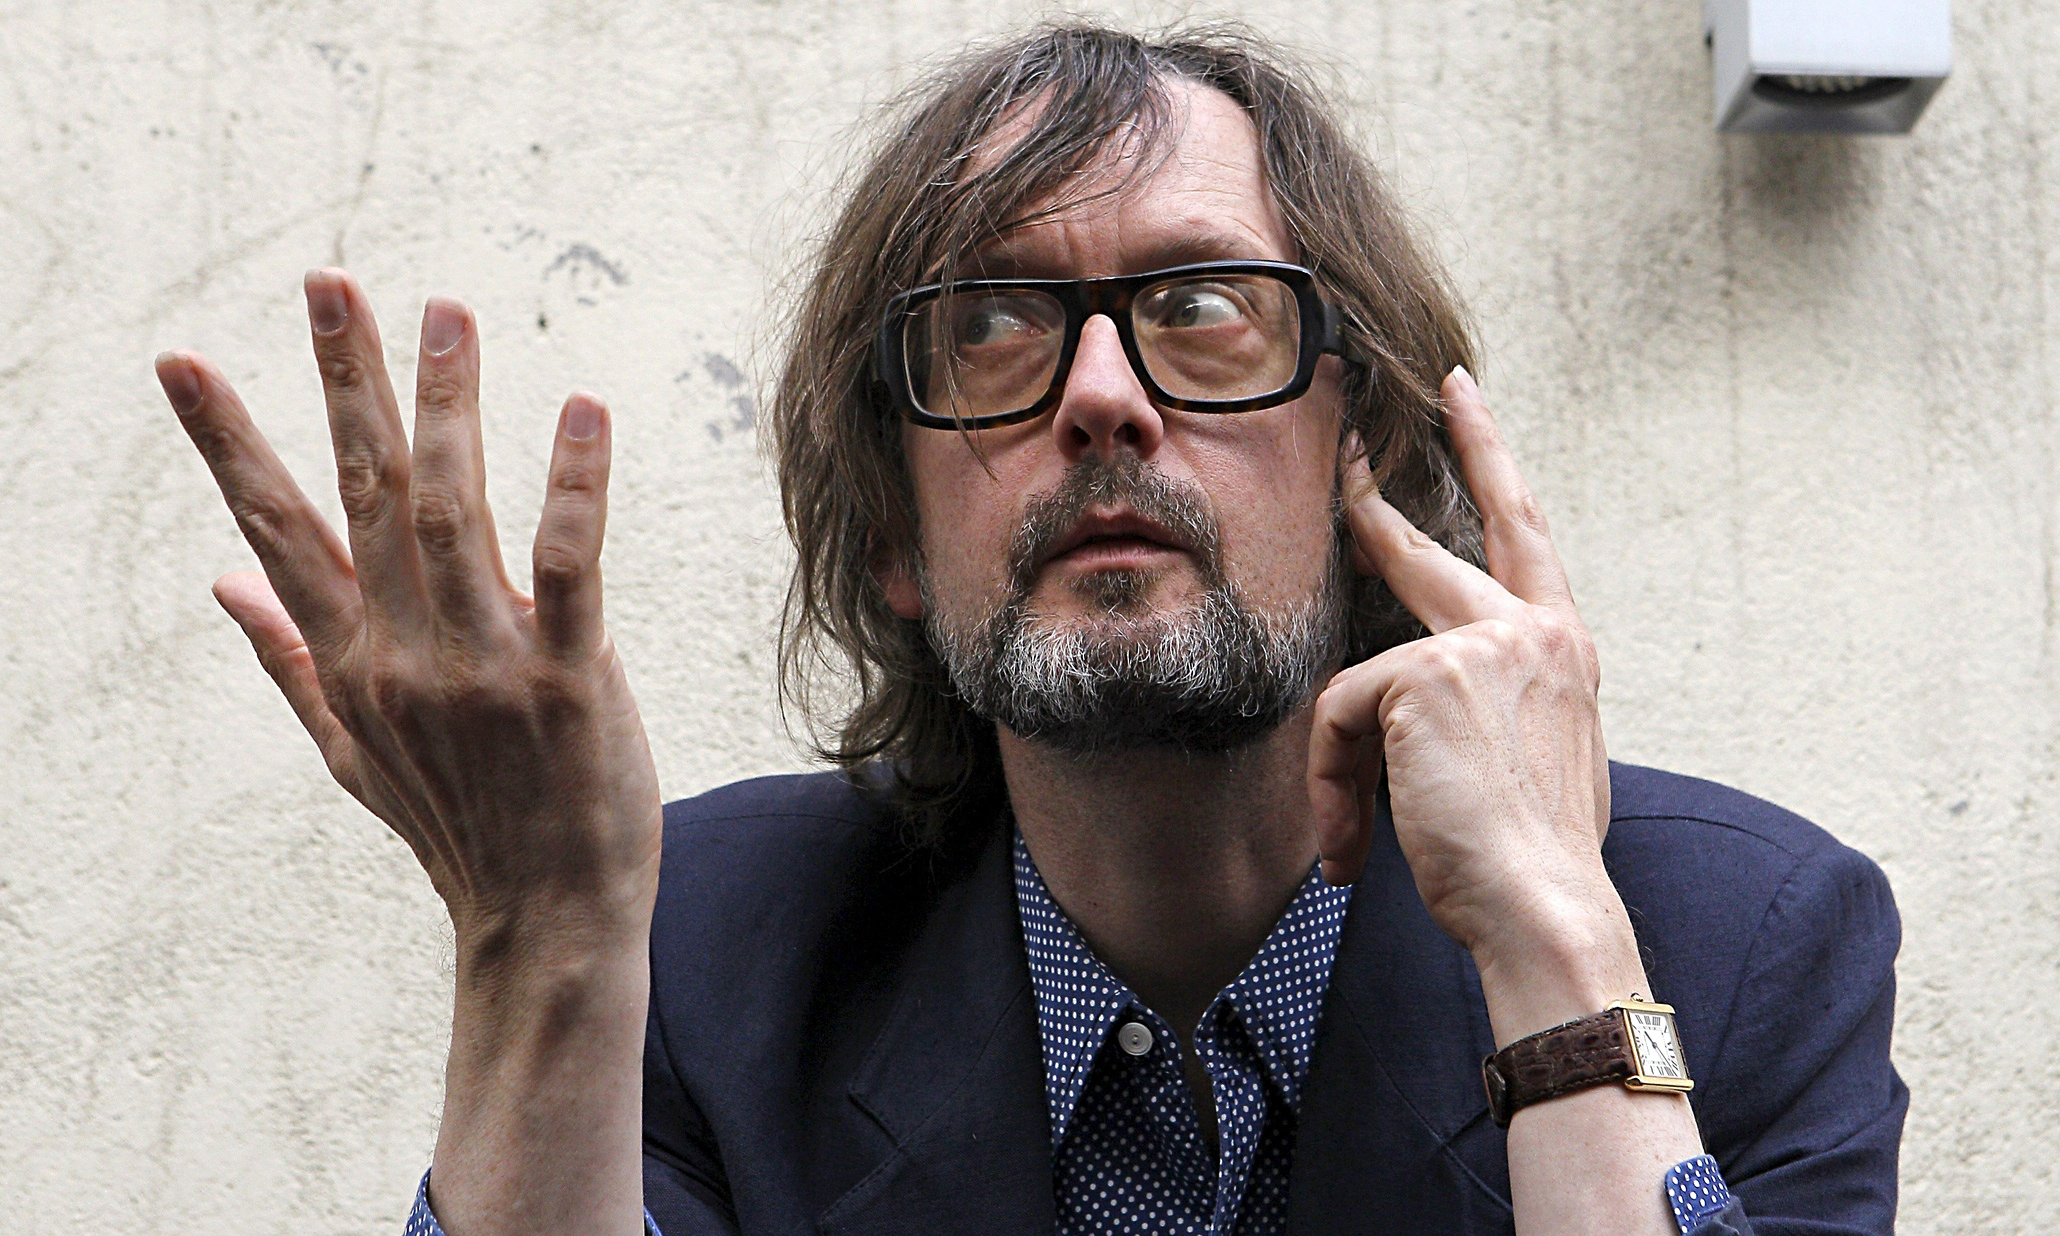 Jarvis Cocker photoshoot in Madrid, Spain - 28 Jun 2012